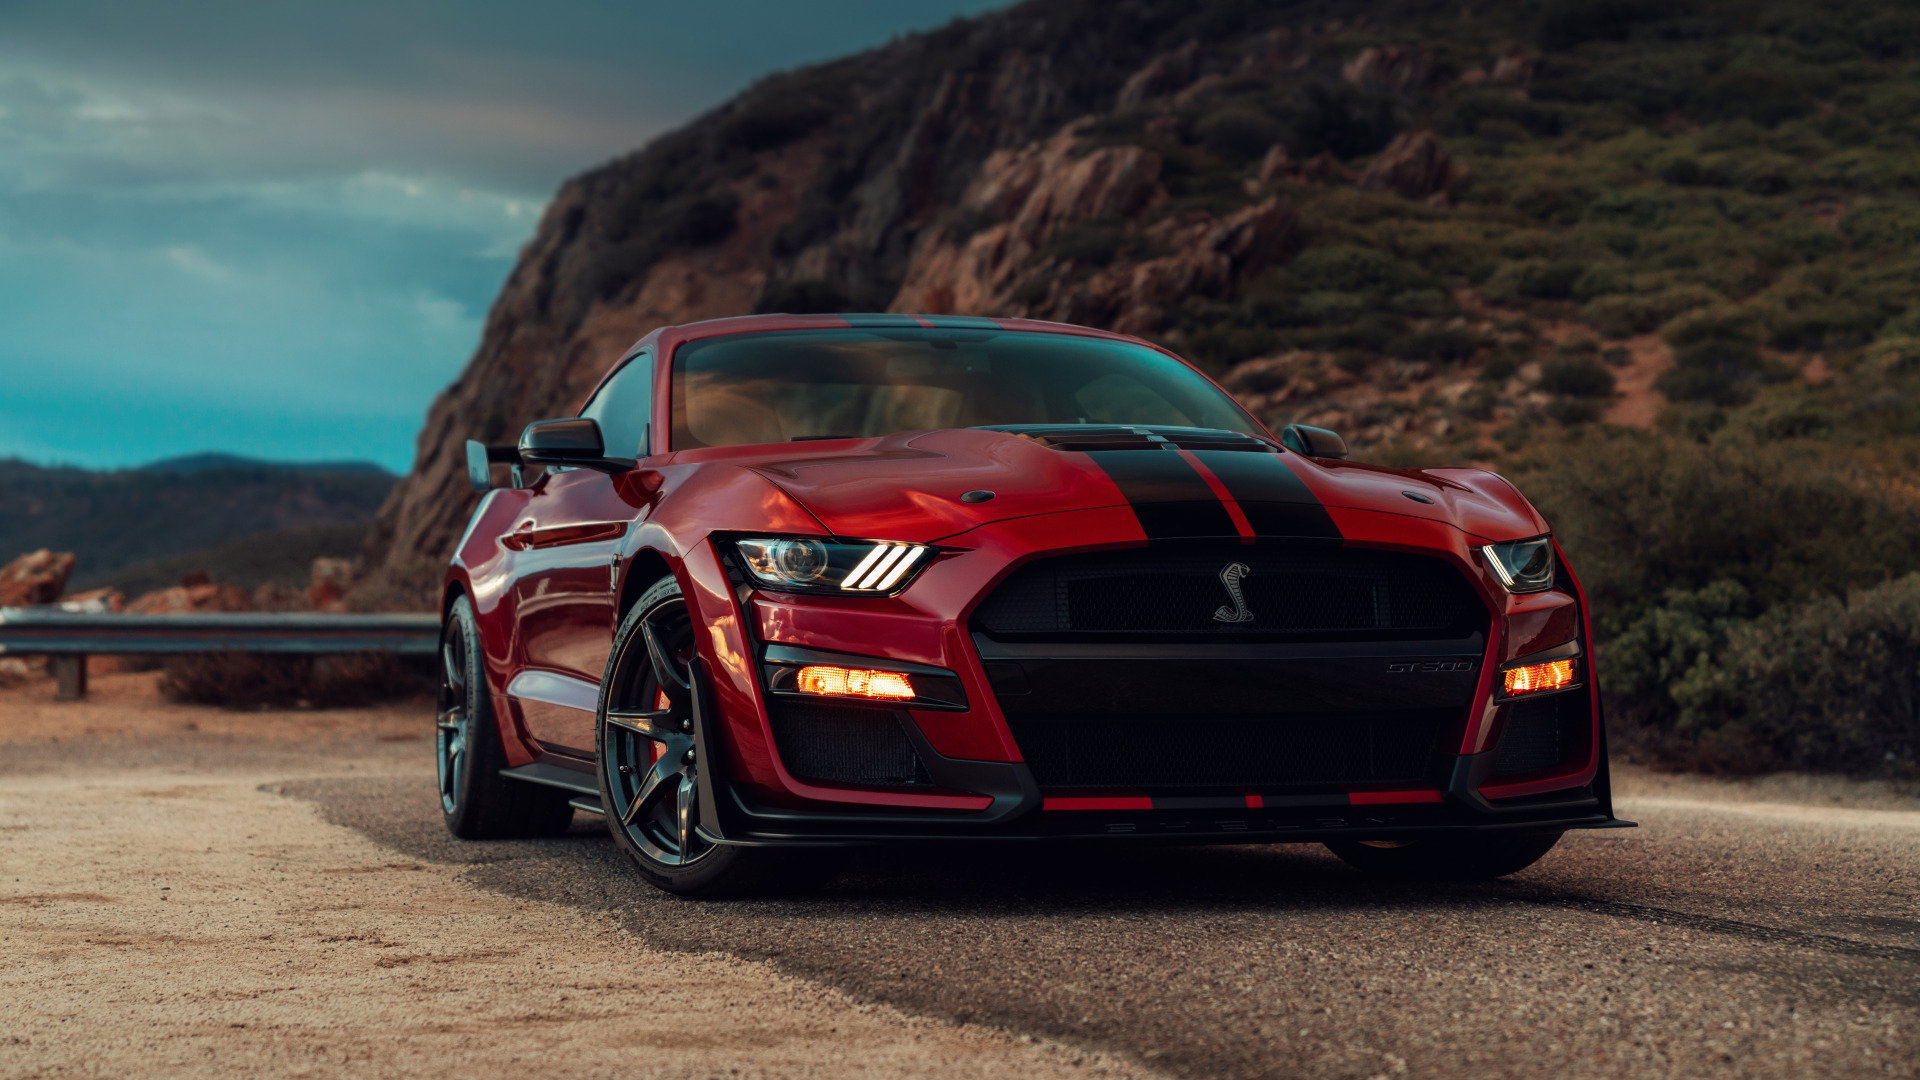 Ford Mustang Shelby GT500 (1920x1080) - Обои - Автомобили